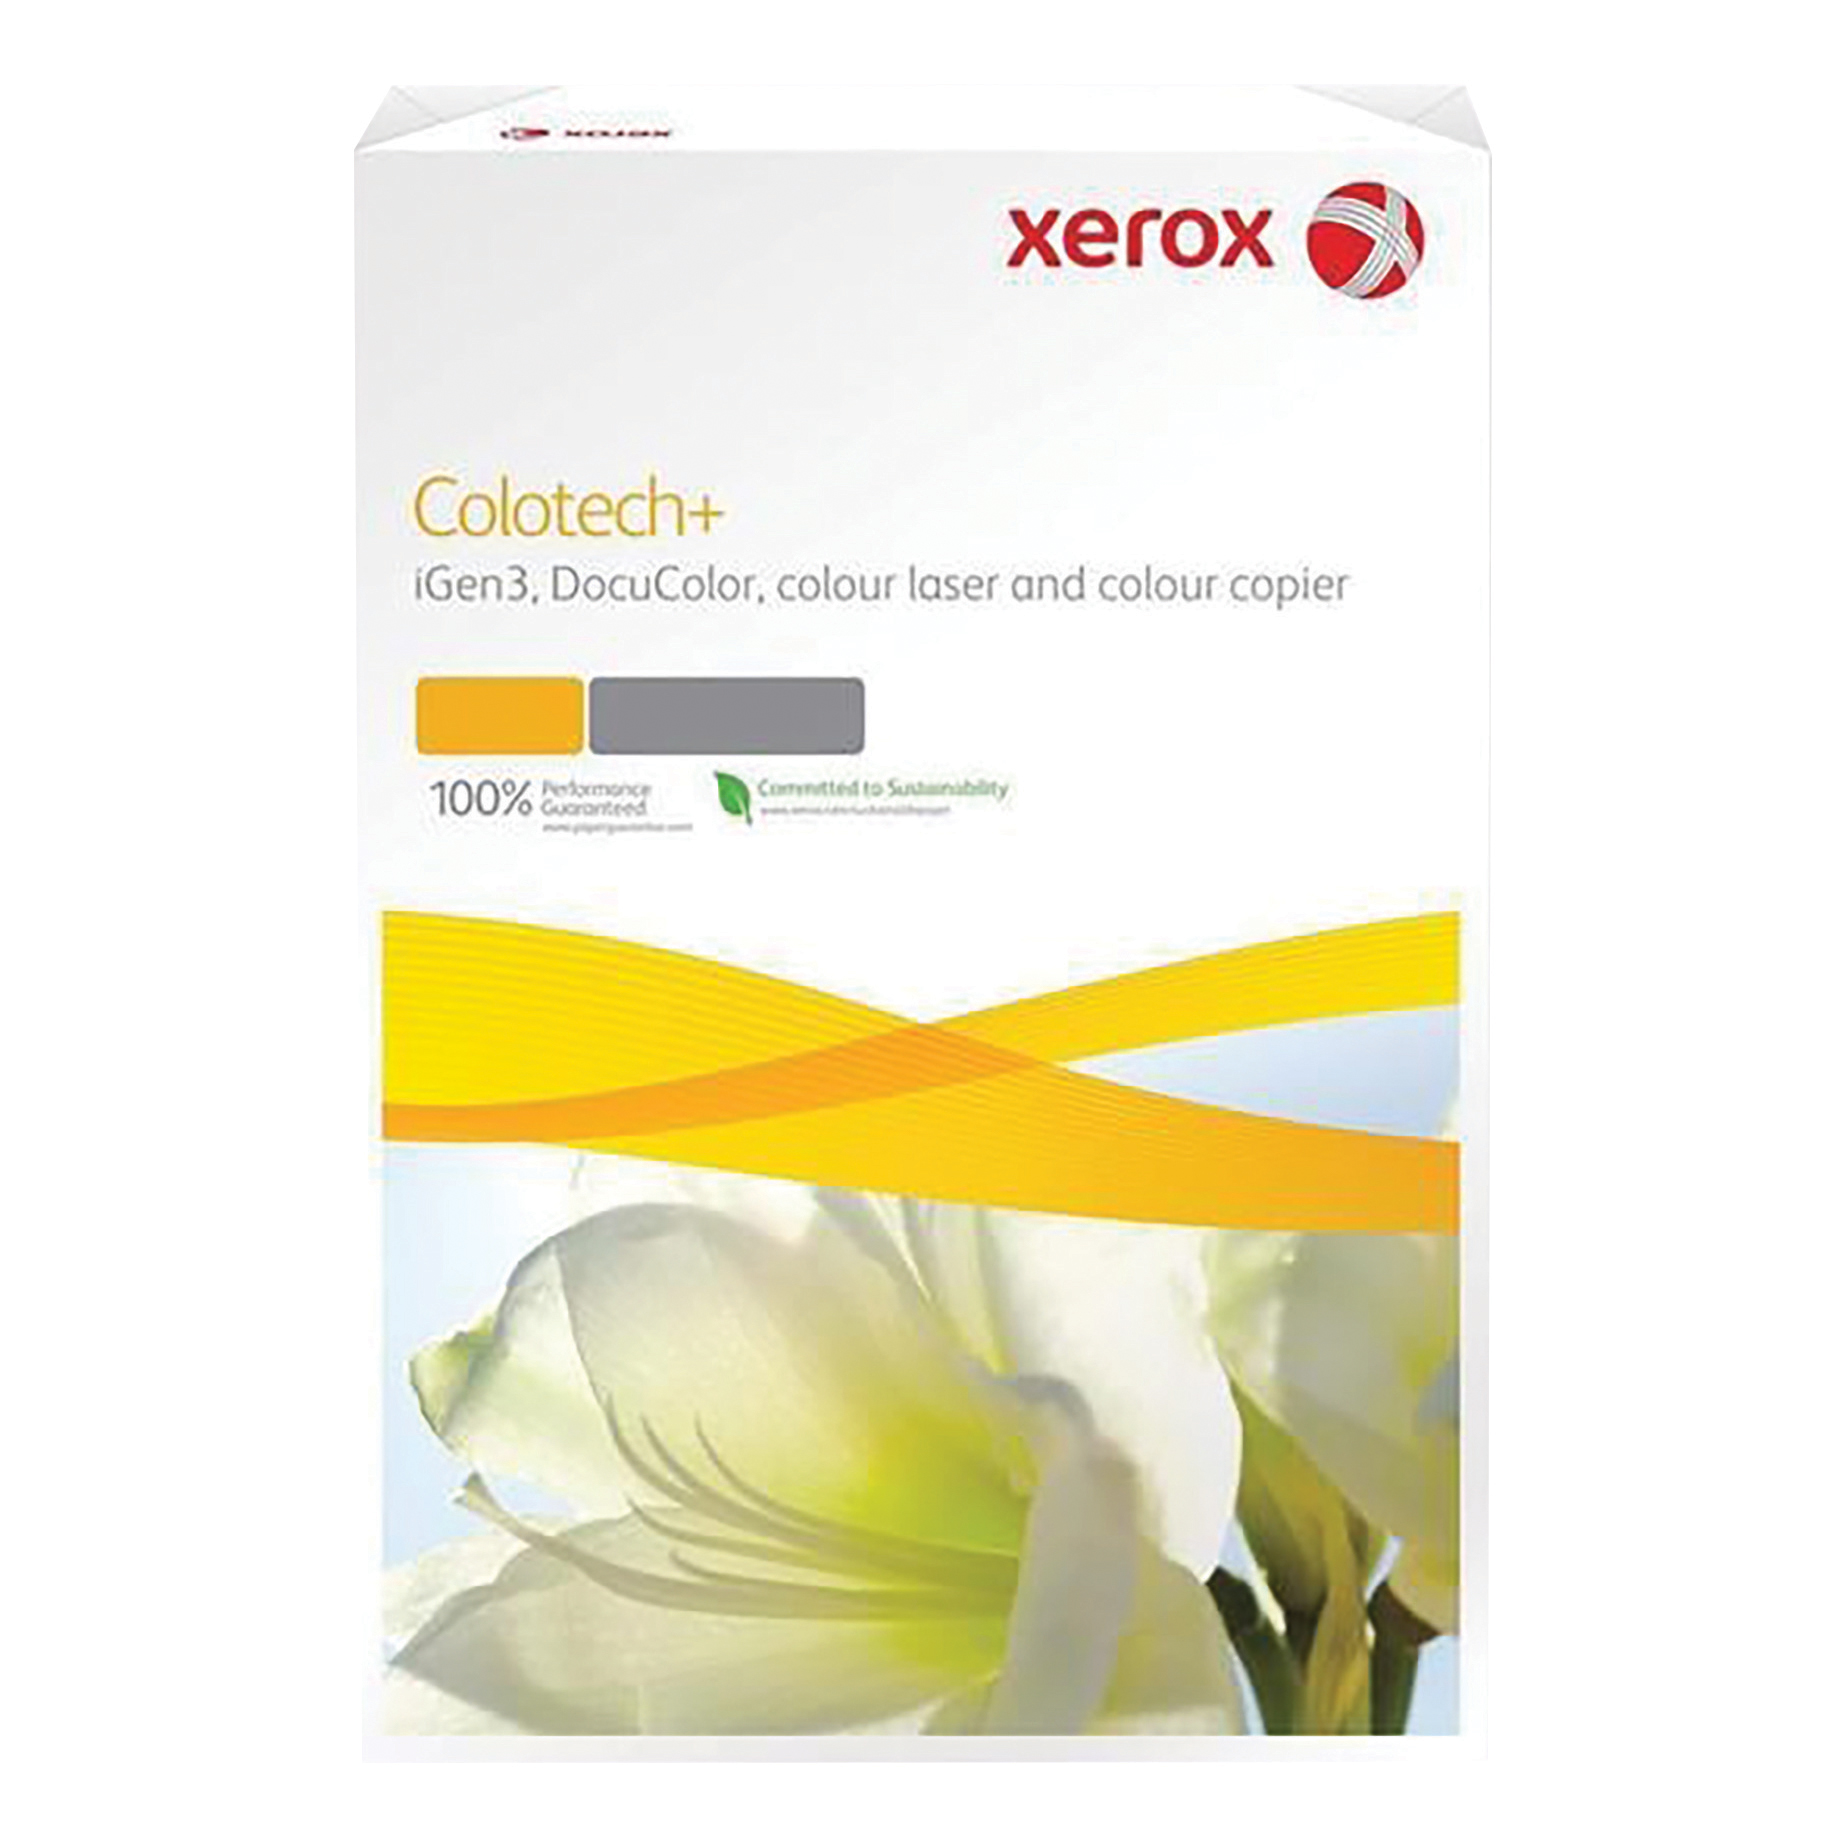 Xerox FSC Colotech+ Digital Colour Paper Prem Ream-Wrapped ColorLok 100gsm A3 White Ref 64462500 Sheets